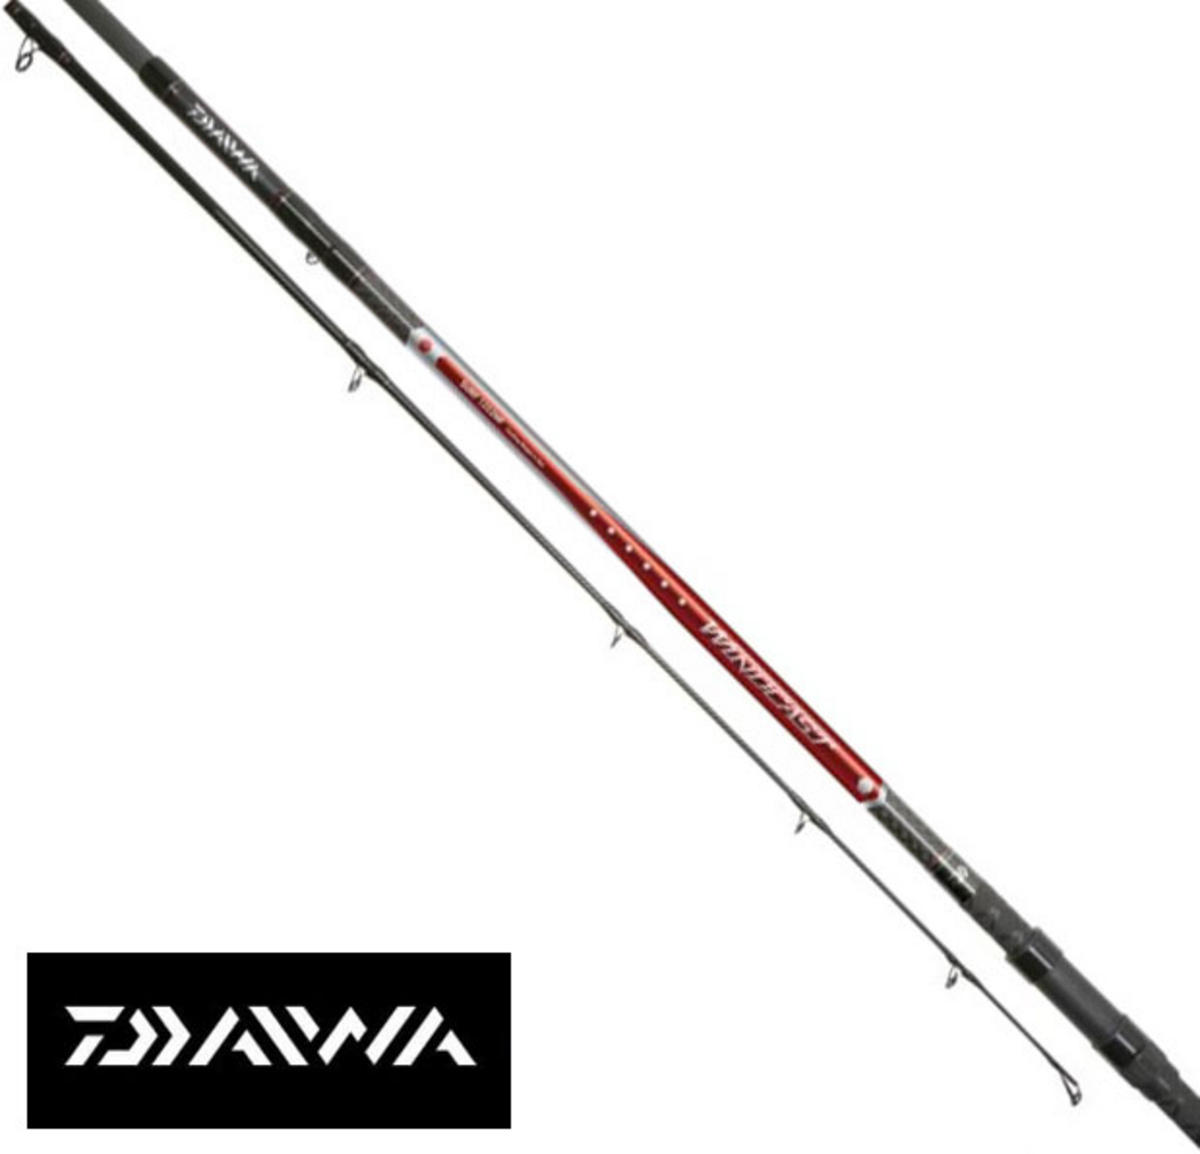 NEW DAIWA WINDCAST SURF SHORE BEACH FISHING RODS ALL MODELS